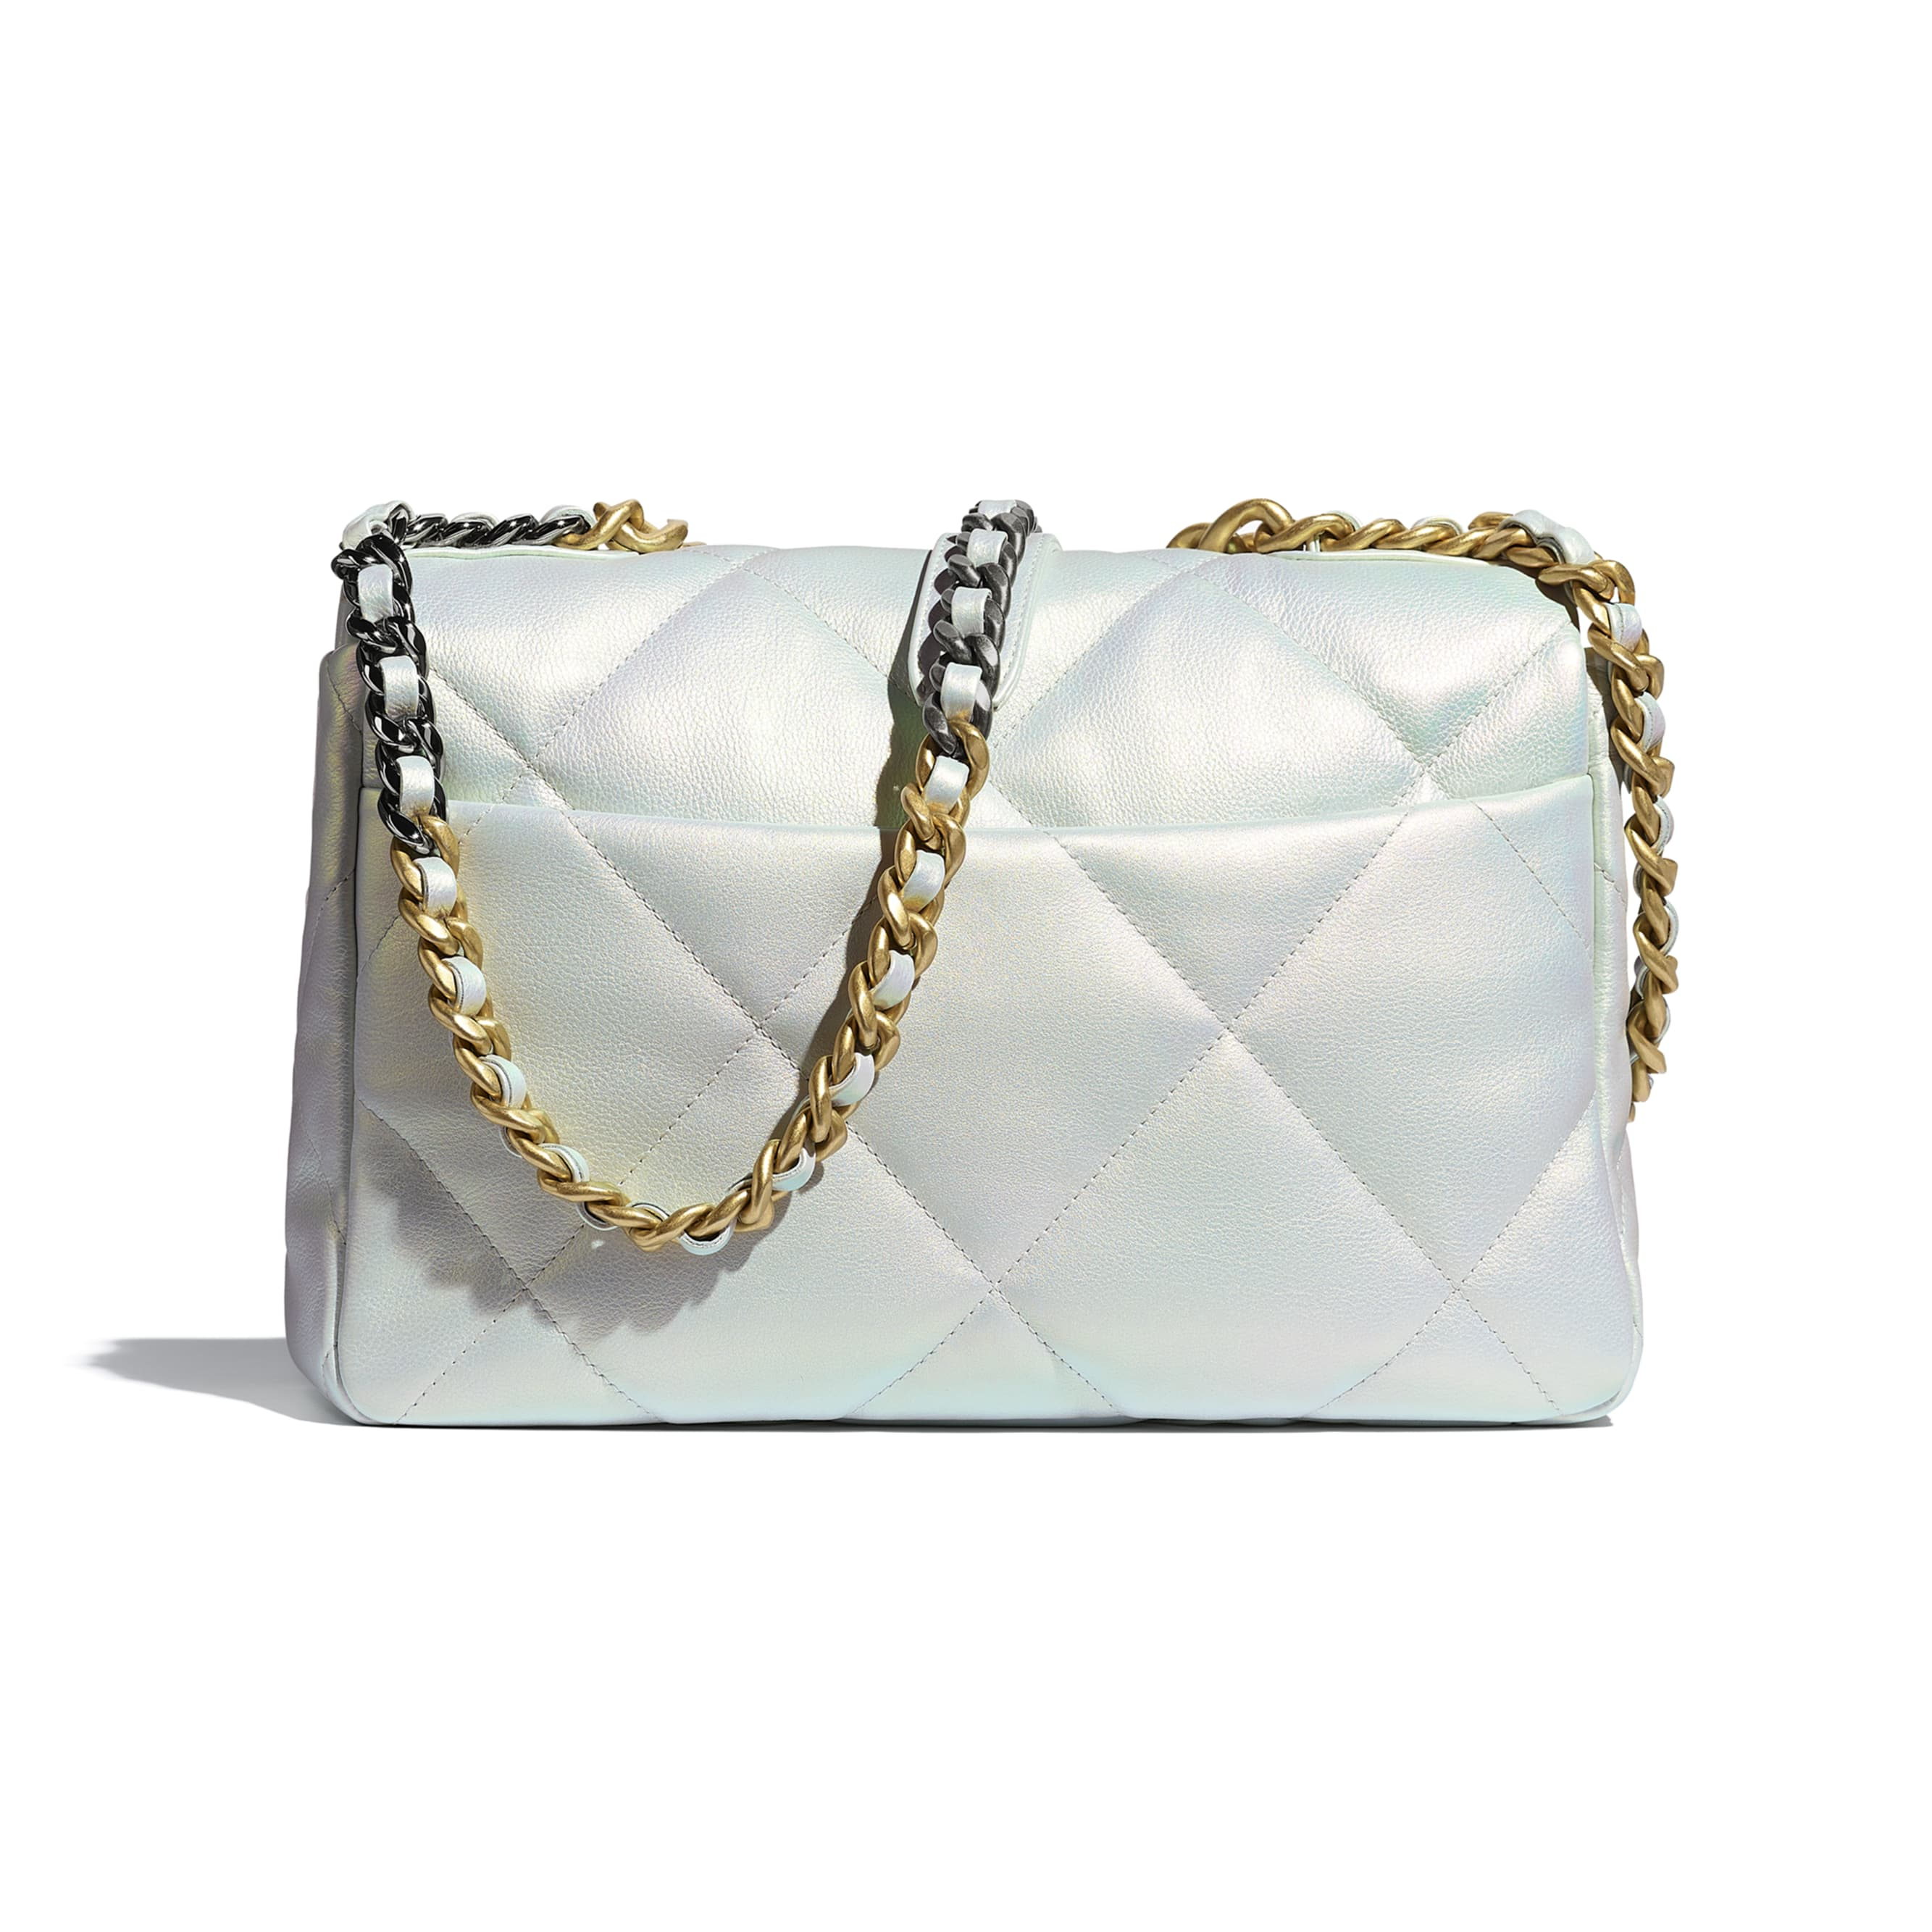 CHANEL 19 Large Flap Bag - White - Iridescent Calfskin, Gold-Tone, Silver-Tone & Ruthenium-Finish Metal - CHANEL - Alternative view - see standard sized version